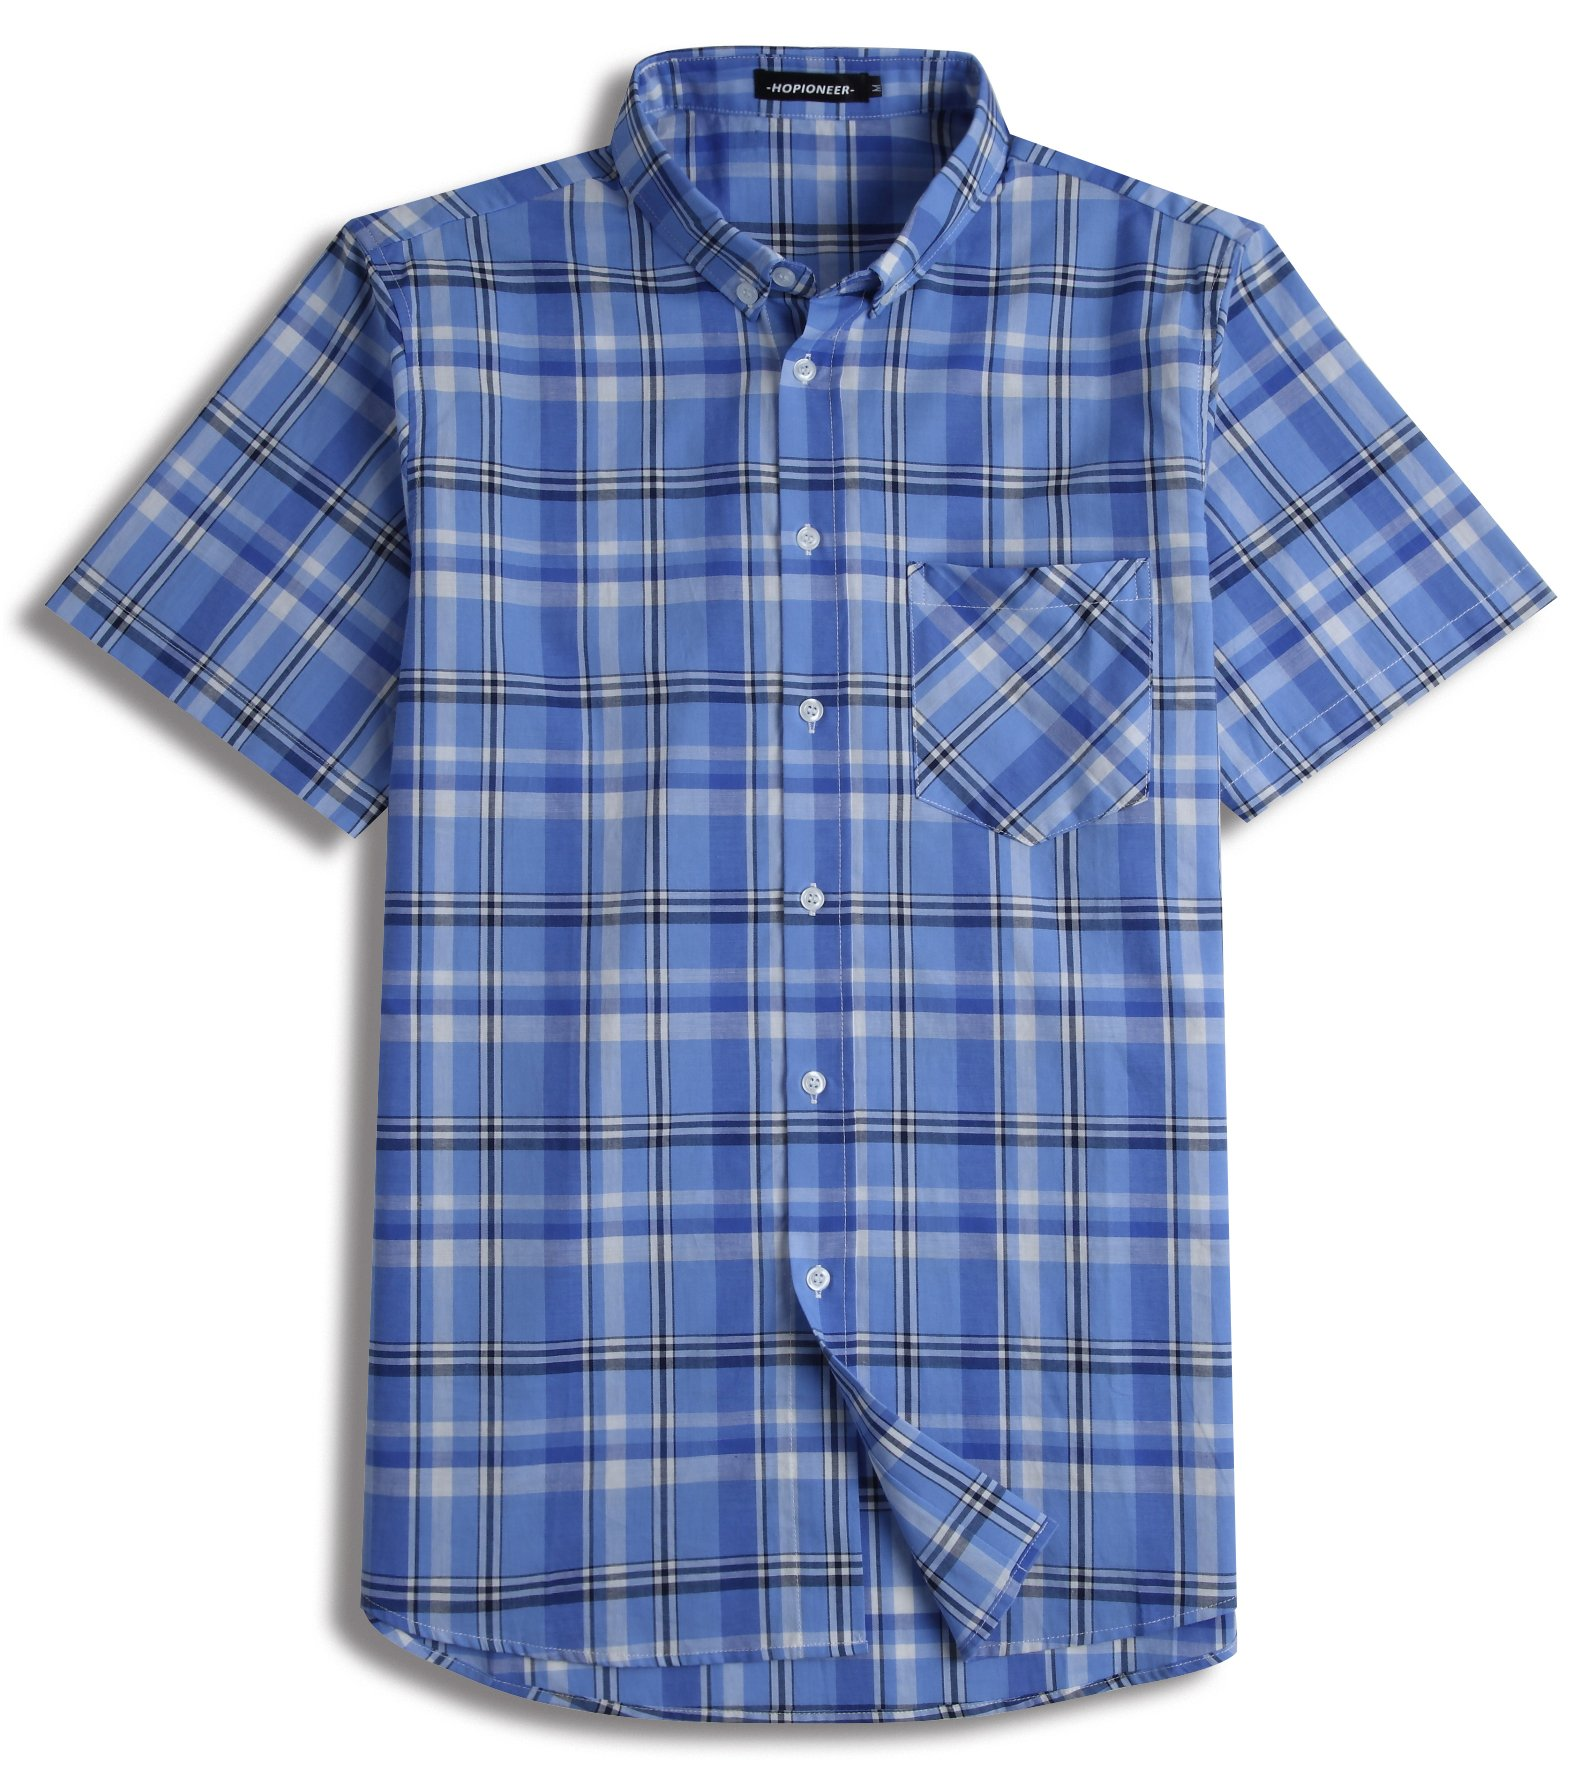 Hopioneer Men's Relaxed Fit Plaid Short Sleeve Button Down Shirt Cotton Button up Casual Summer Woven Shirt (X-Large, Blue)